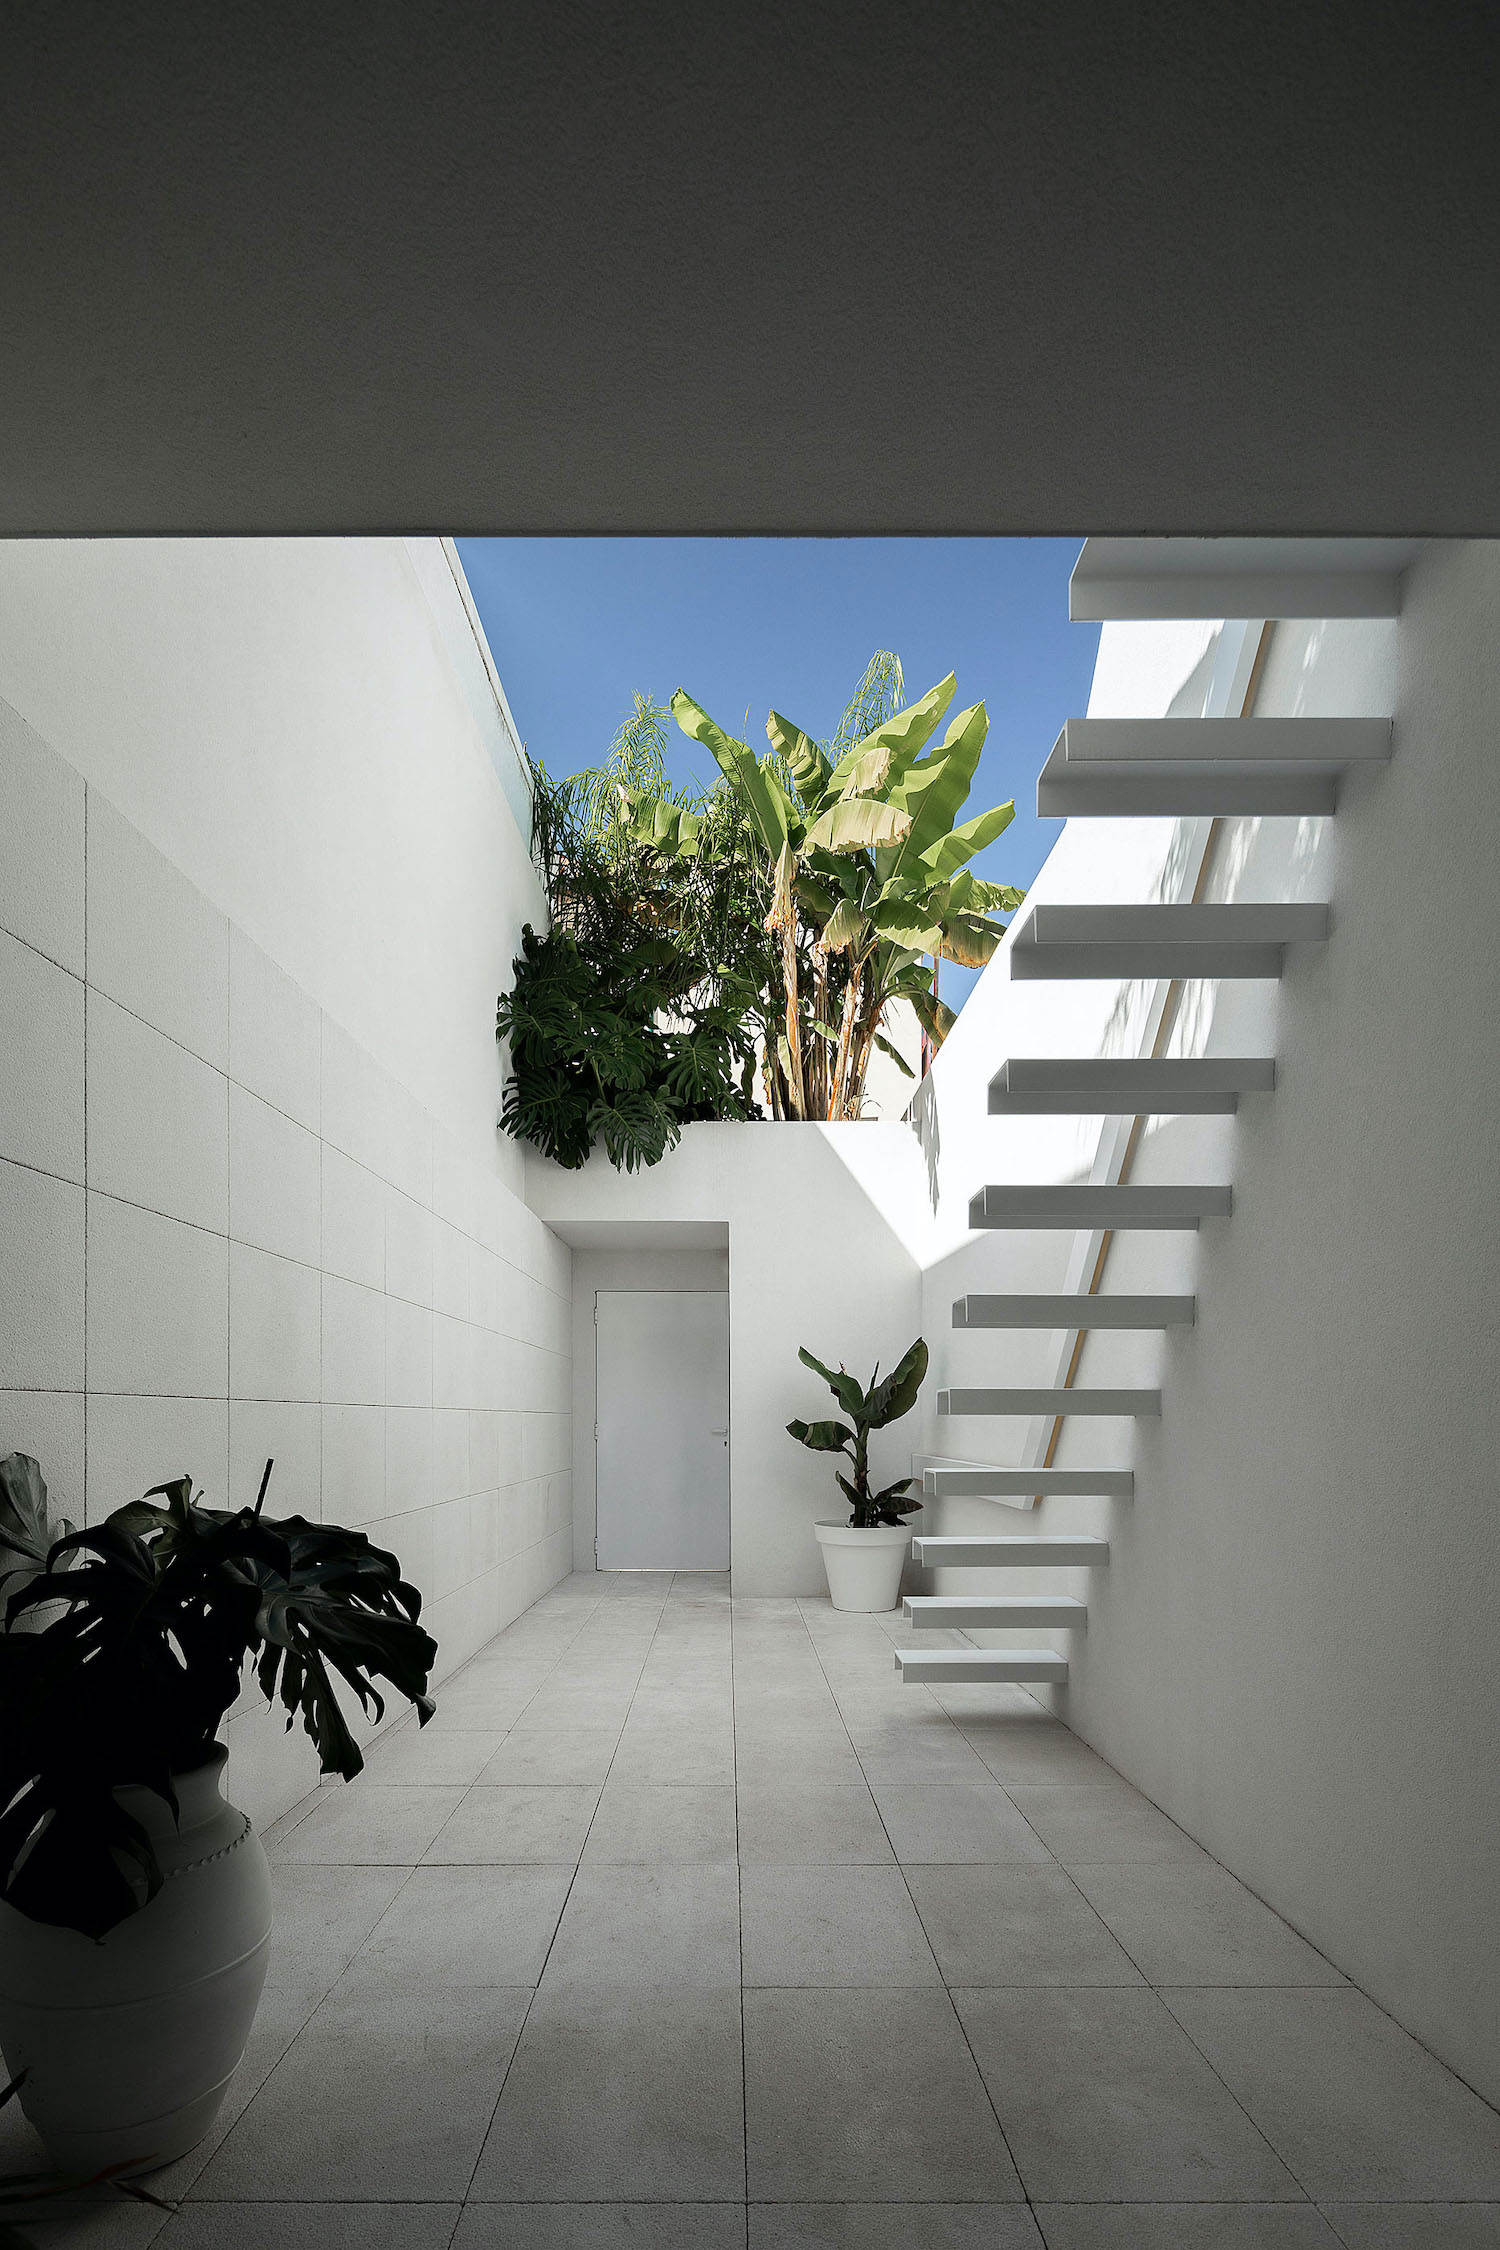 backyard of a small house with staircase and plants